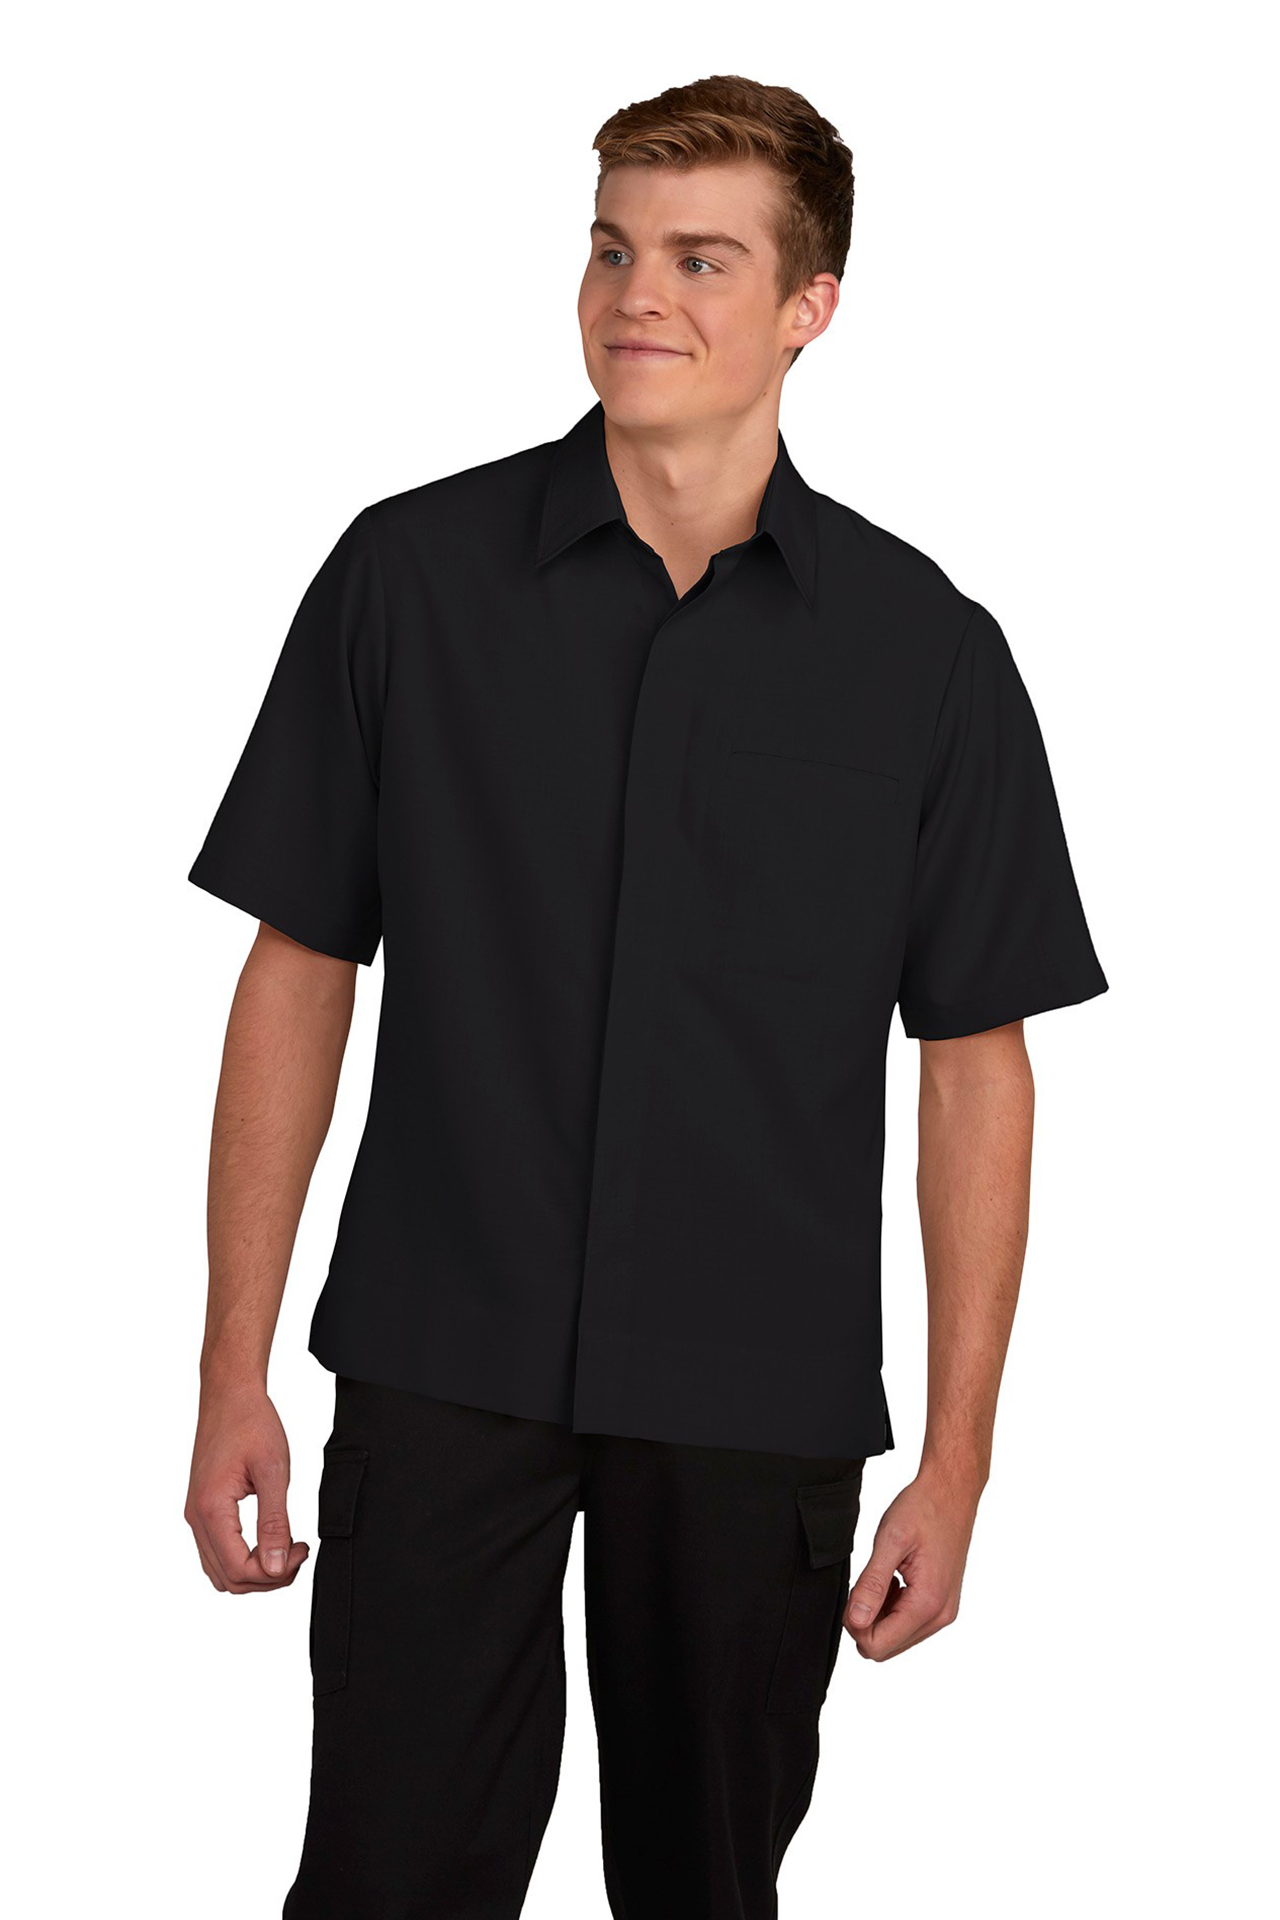 Mens Hospitality Camp Shirt, Spread Collar-A Plus